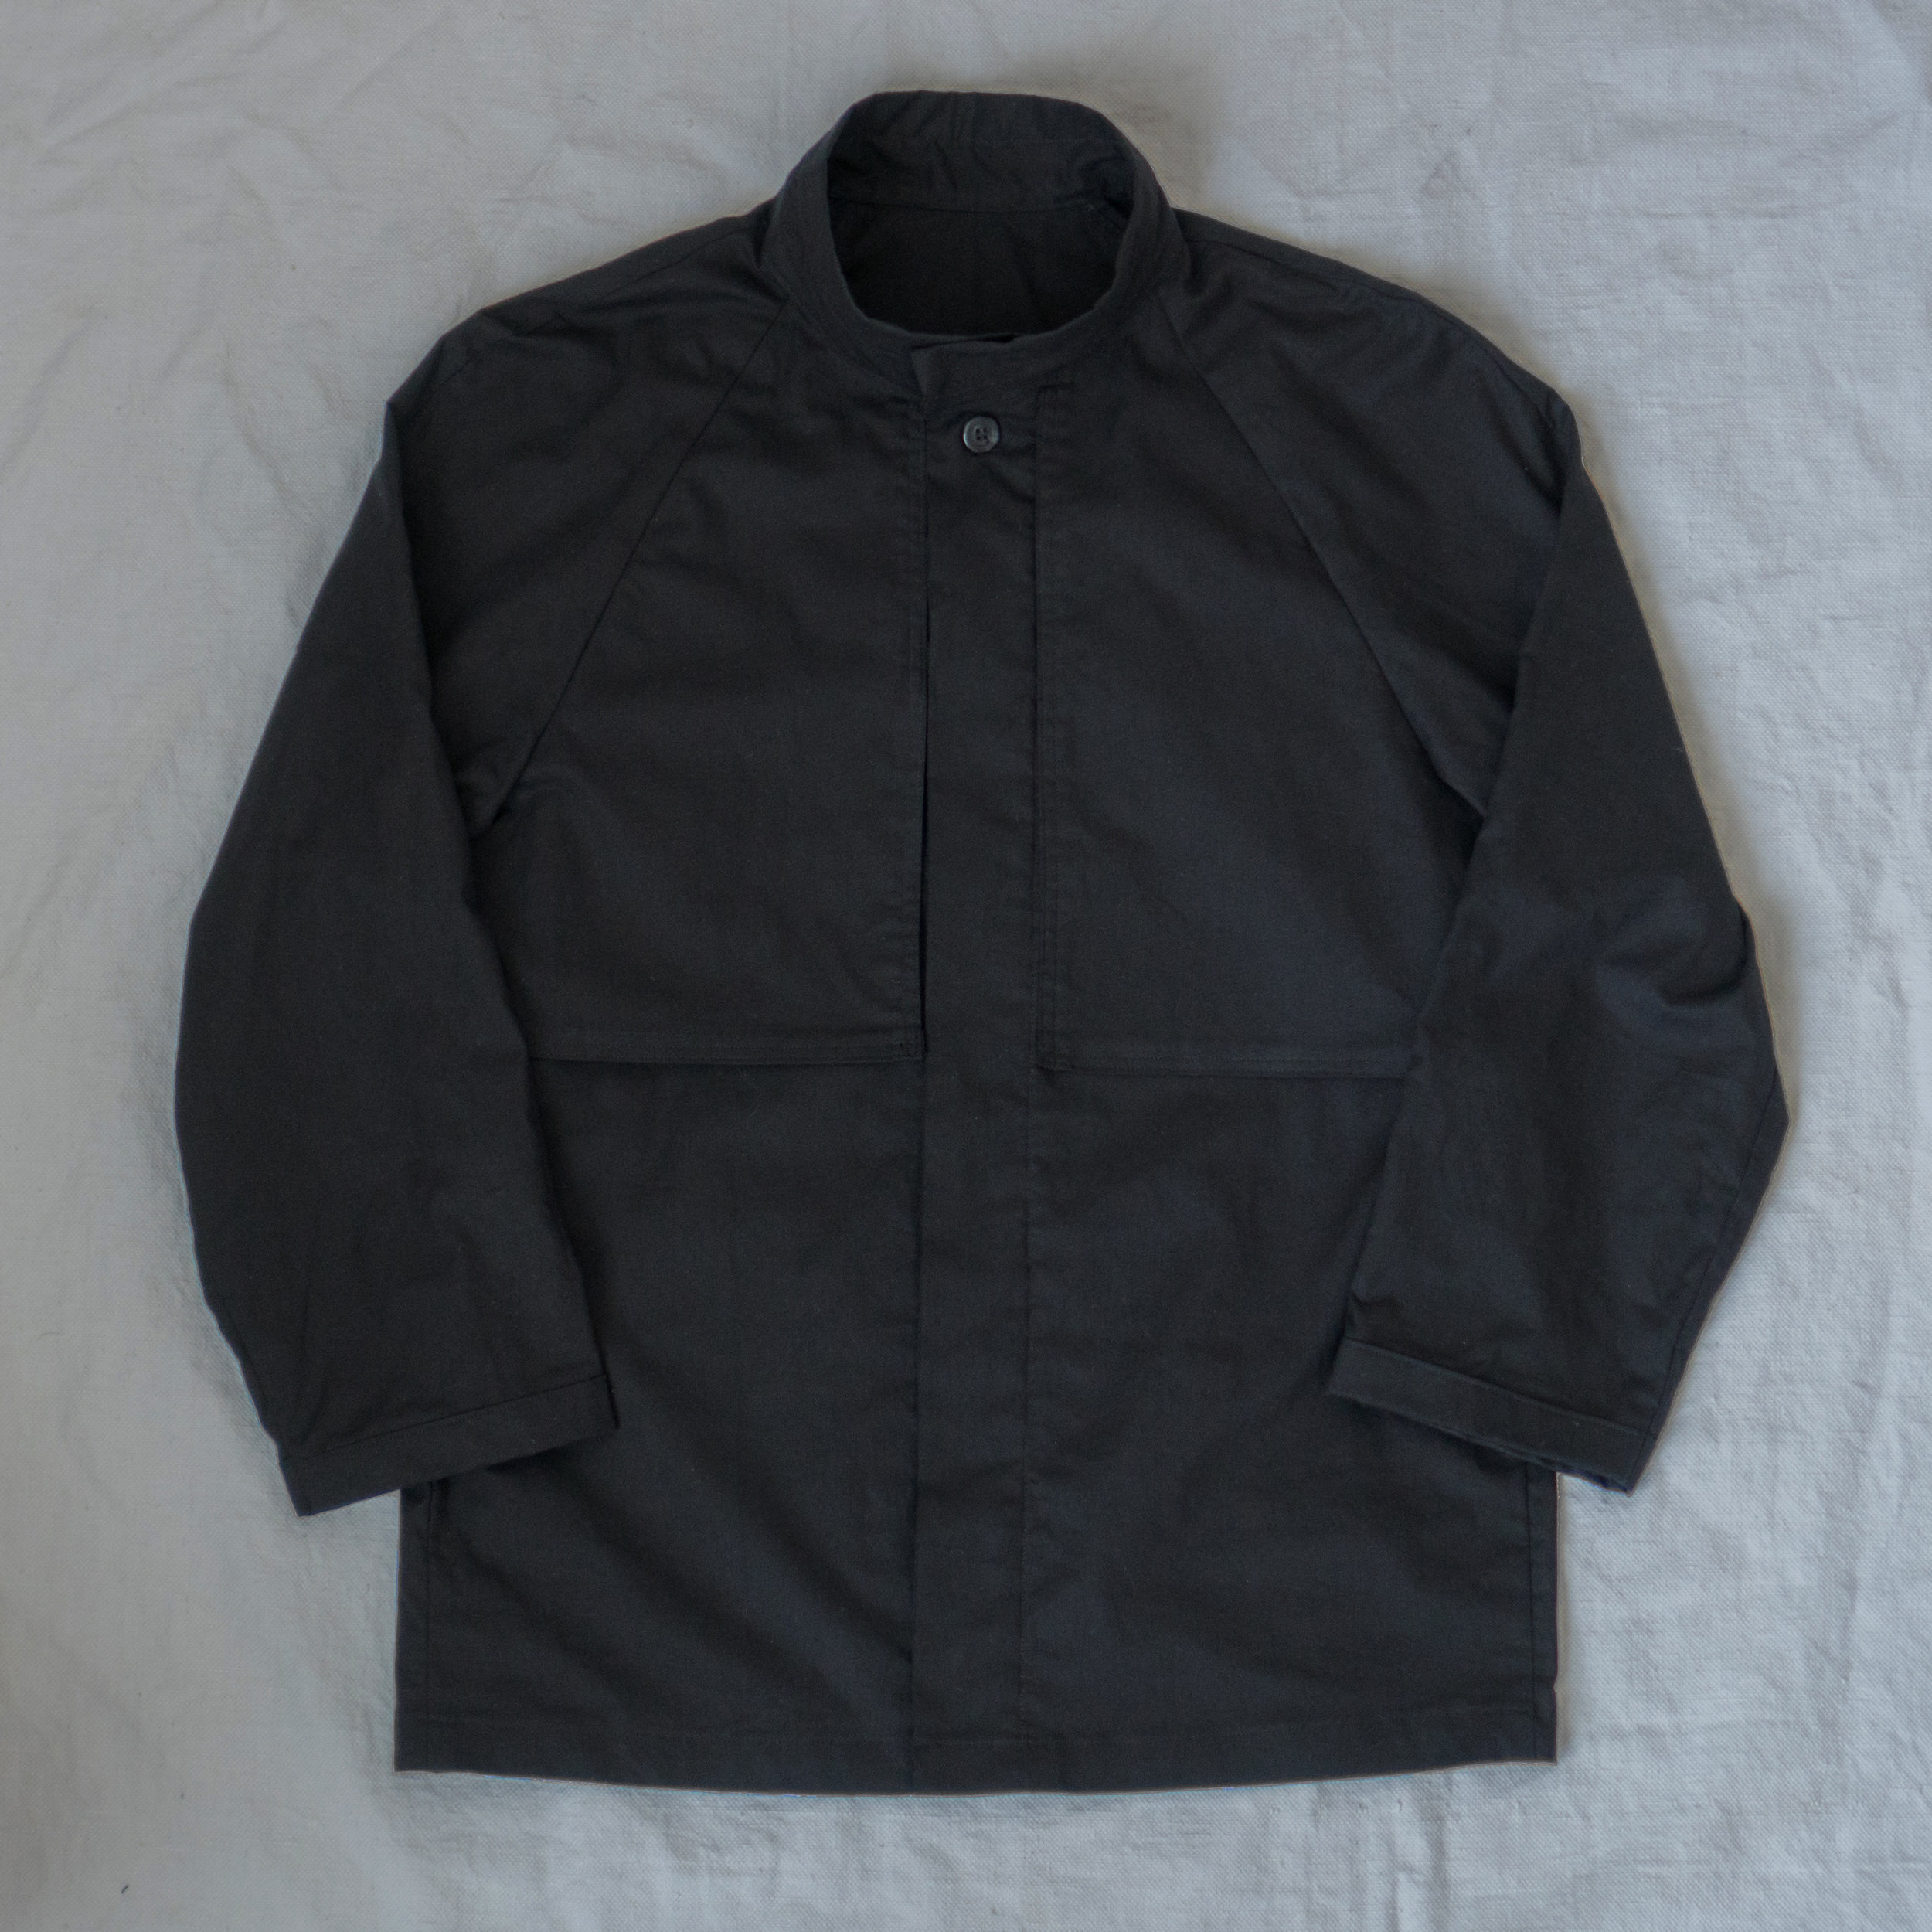 UNIFORM SHIRT IN BLACK  SOLD OUT